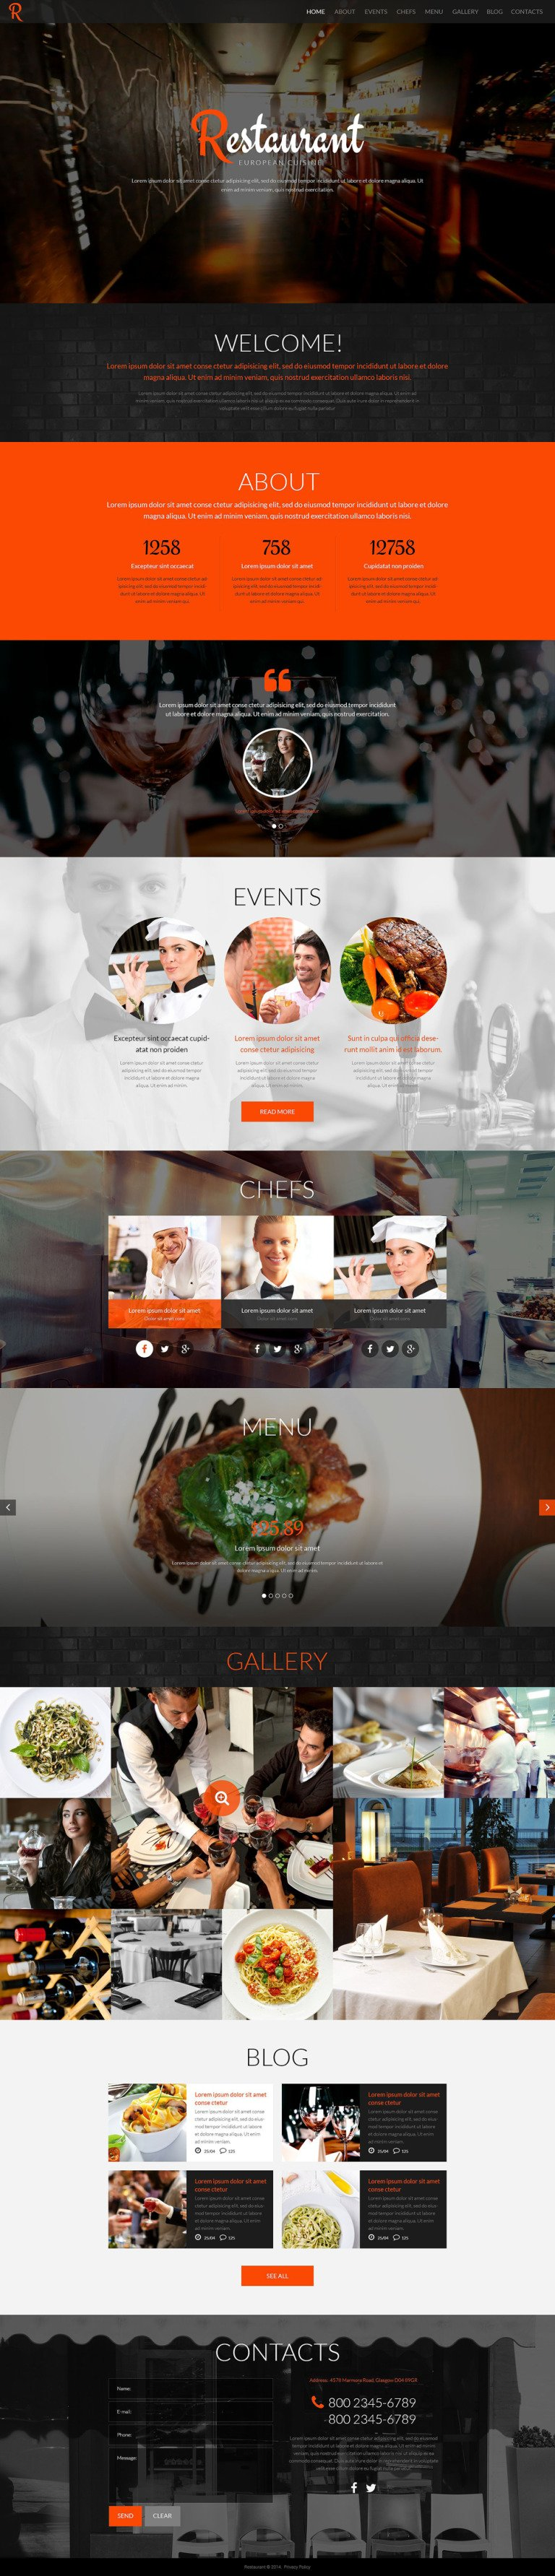 Restaurant WordPress Theme New Screenshots BIG